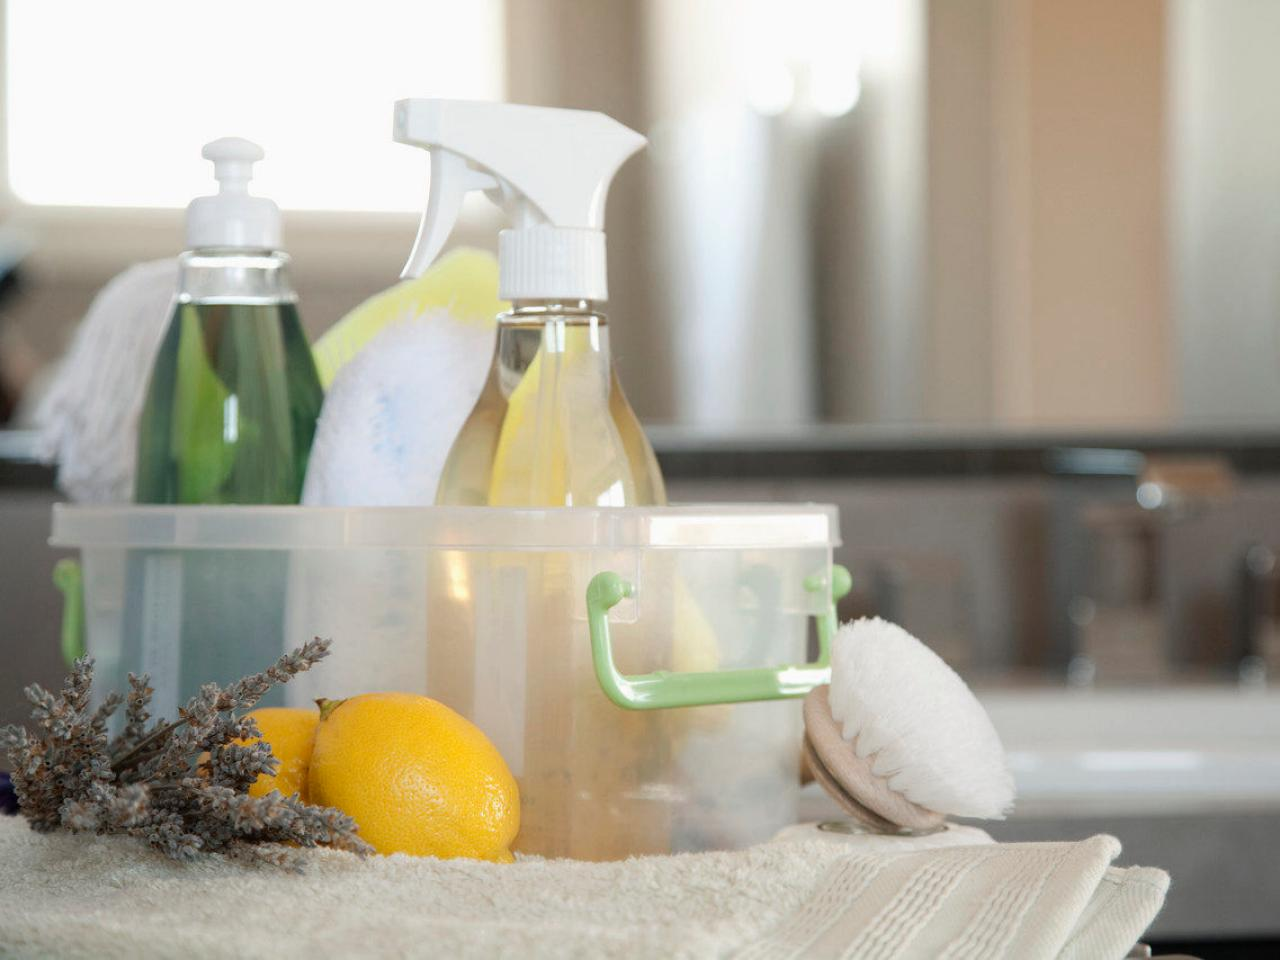 Home Care Products Making Course